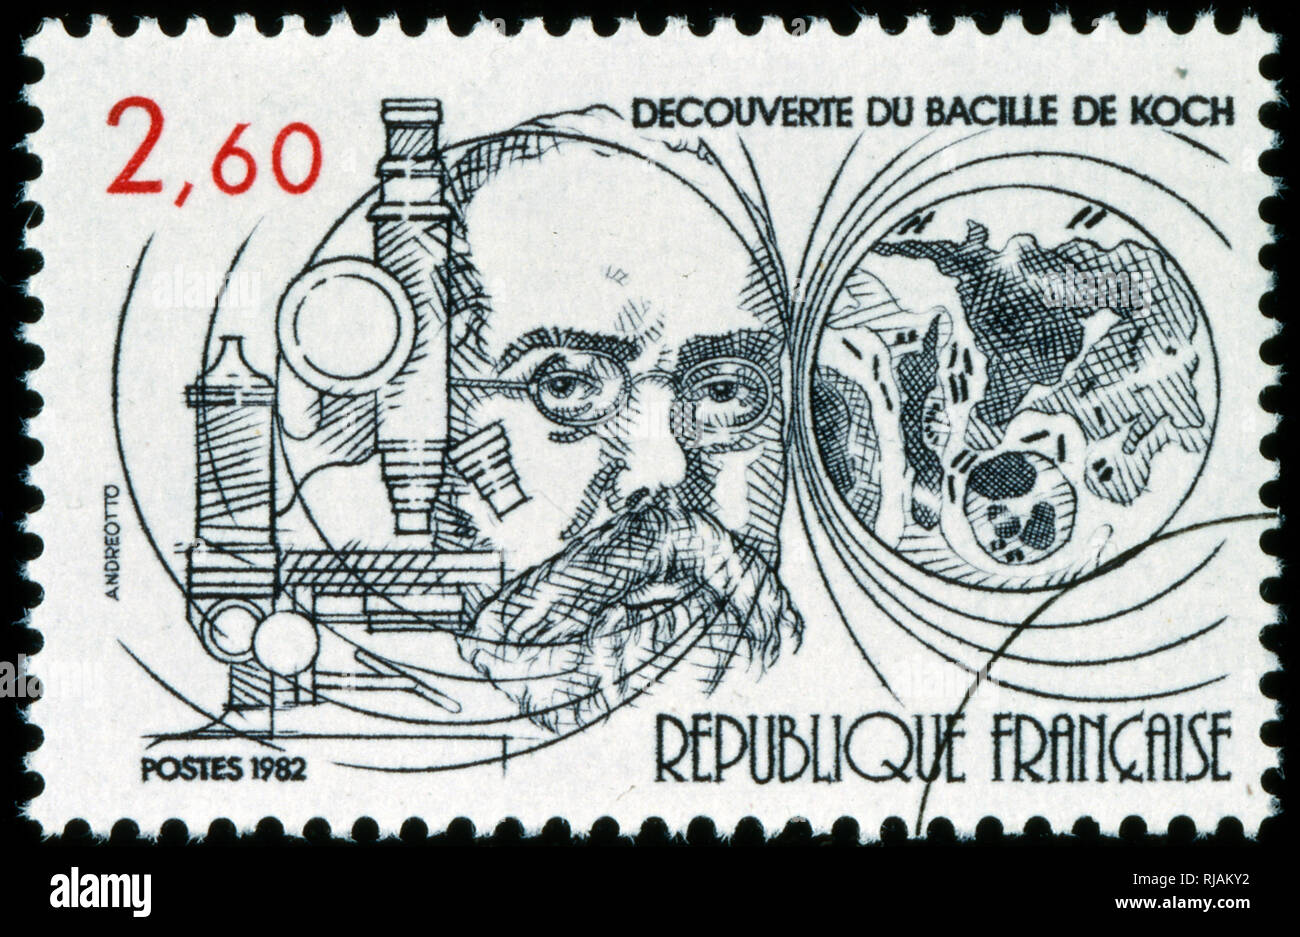 French postage stamp commemorating the work of Heinrich Hermann Robert Koch (1843 - 1910); German physician and microbiologist. As the founder of modern bacteriology, he identified the specific causative agents of tuberculosis, cholera, and anthrax and gave experimental support for the concept of infectious disease; For his research on tuberculosis, Koch received the Nobel Prize in Physiology or Medicine in 1905. - Stock Image